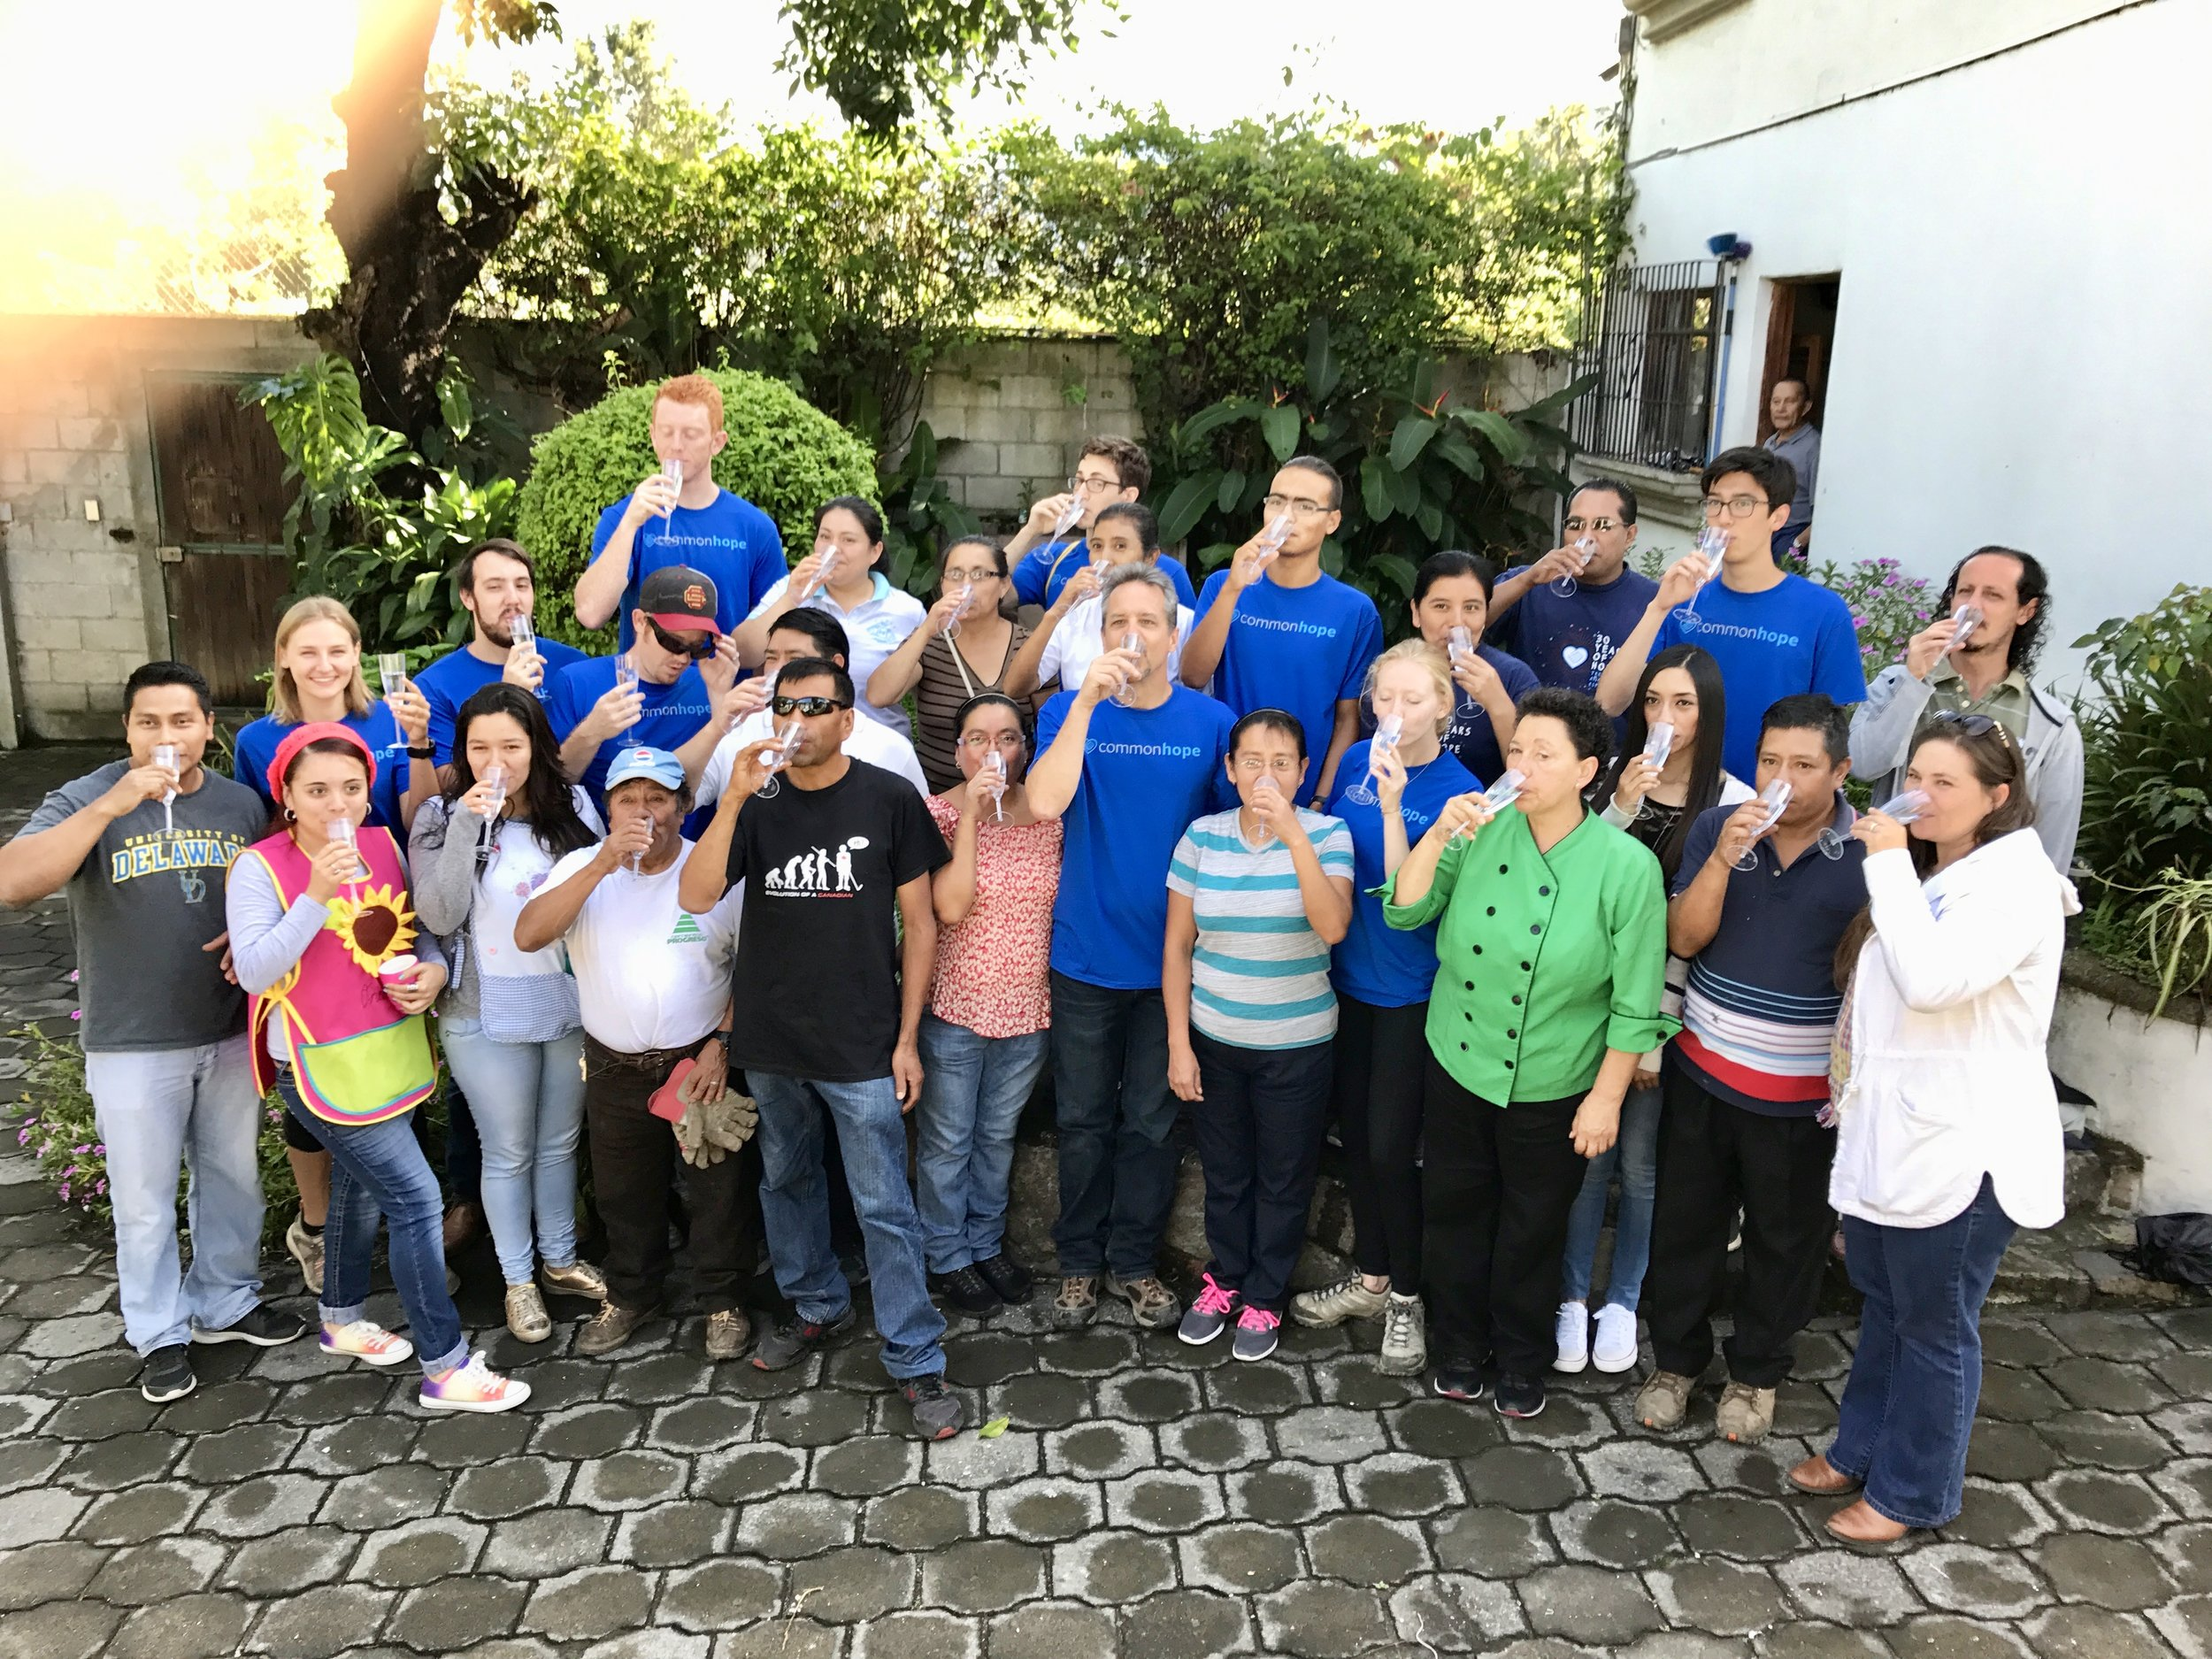 Sampling the newly filtered drinking water at the Common Hope campus during the 2017 Guatemala project implementation trip.